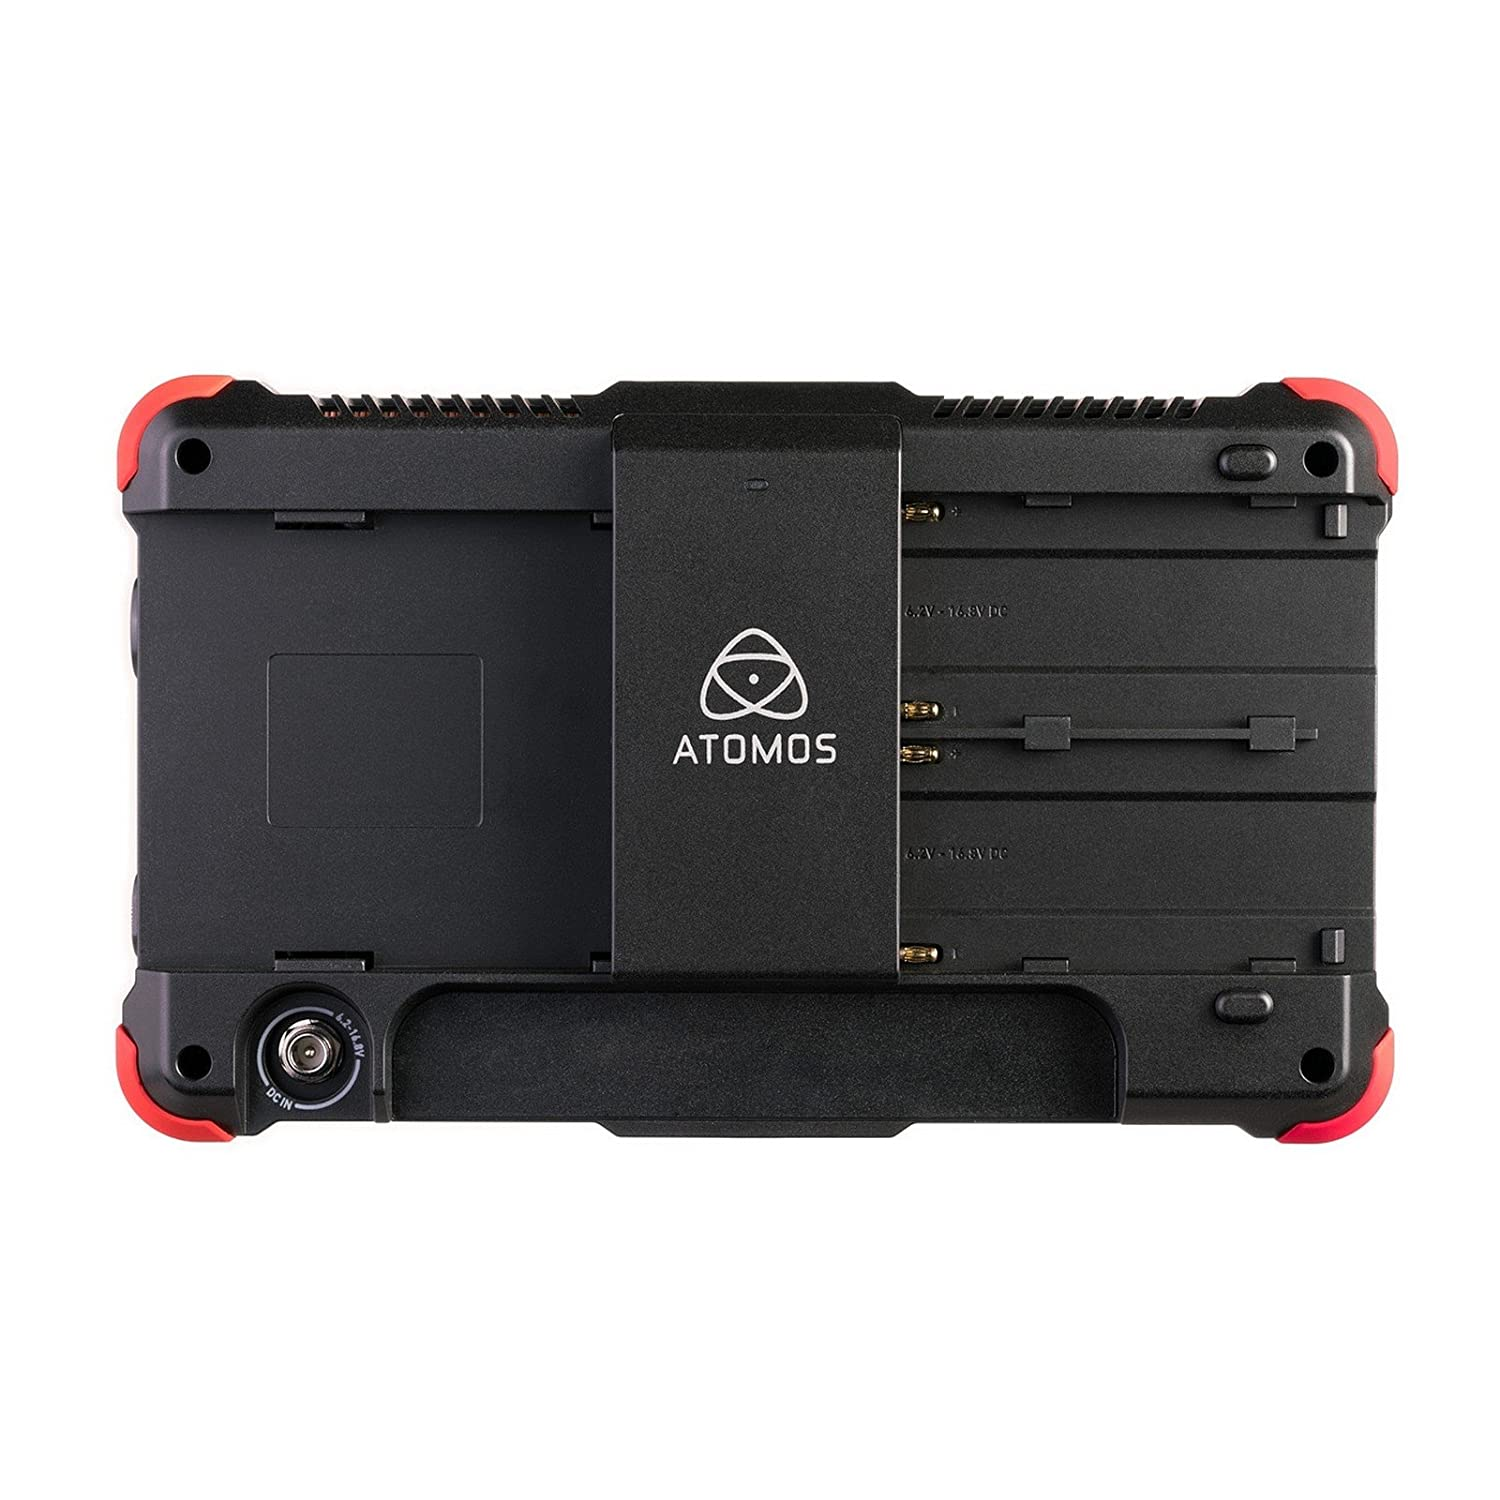 Amazon.com: Atomos Ninja Flame | 7.1 inch 4K Touchscreen ...